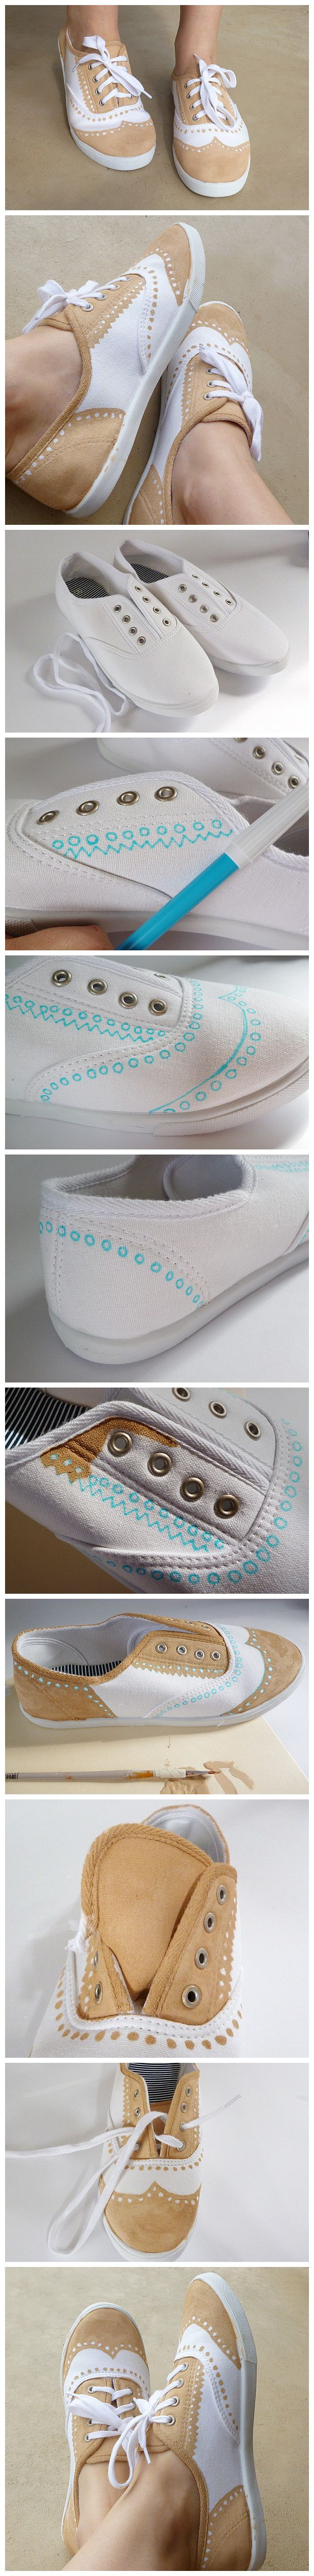 DIY Sneaker Oxfords - cute & comfy for swing dancing